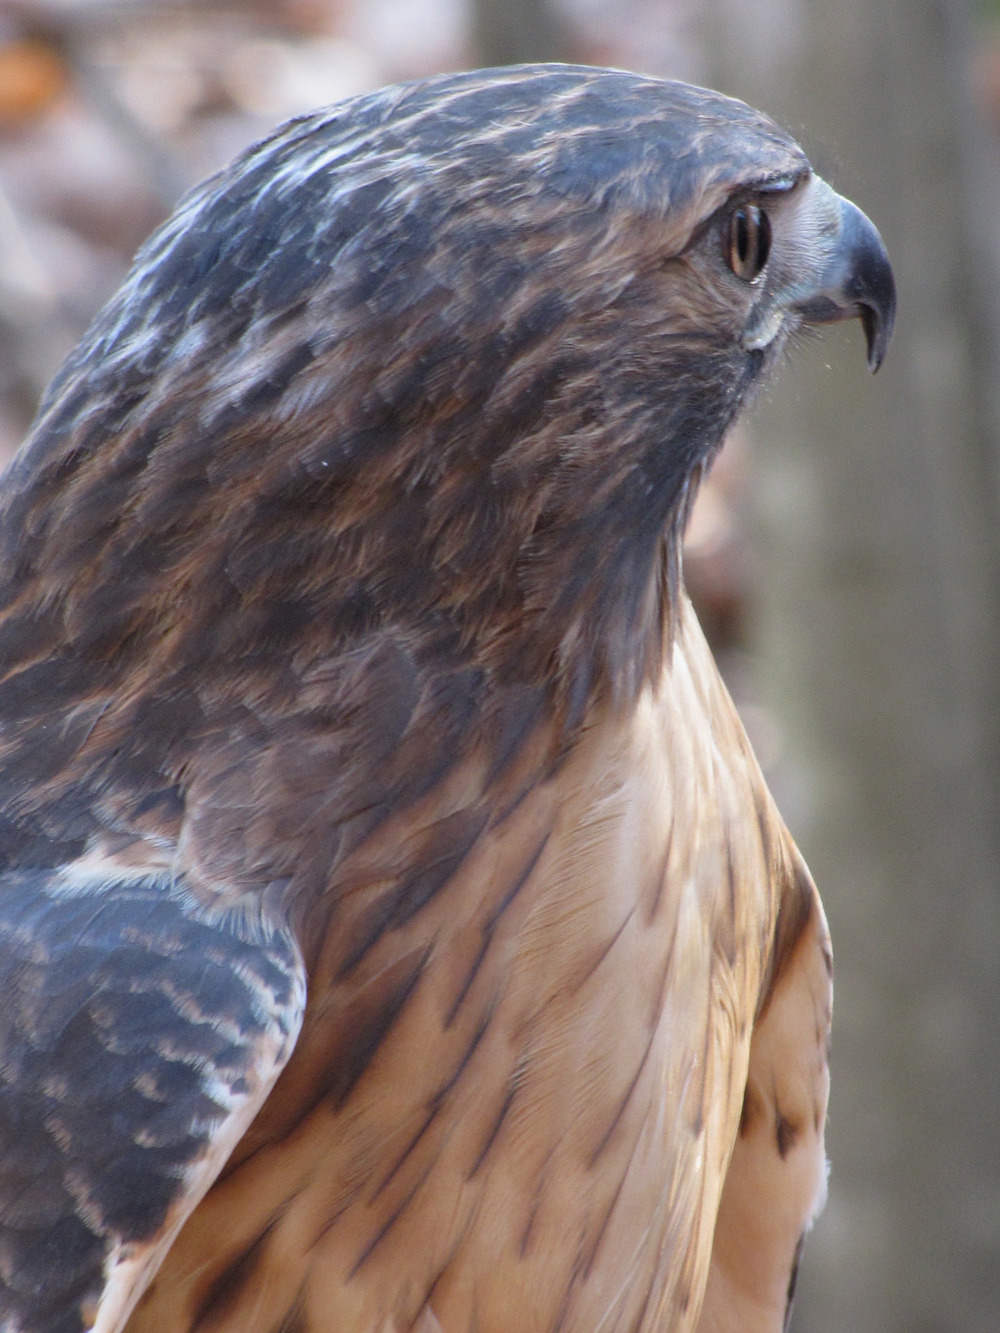 Ruby the Red-tailed Hawk - Side View.jpg